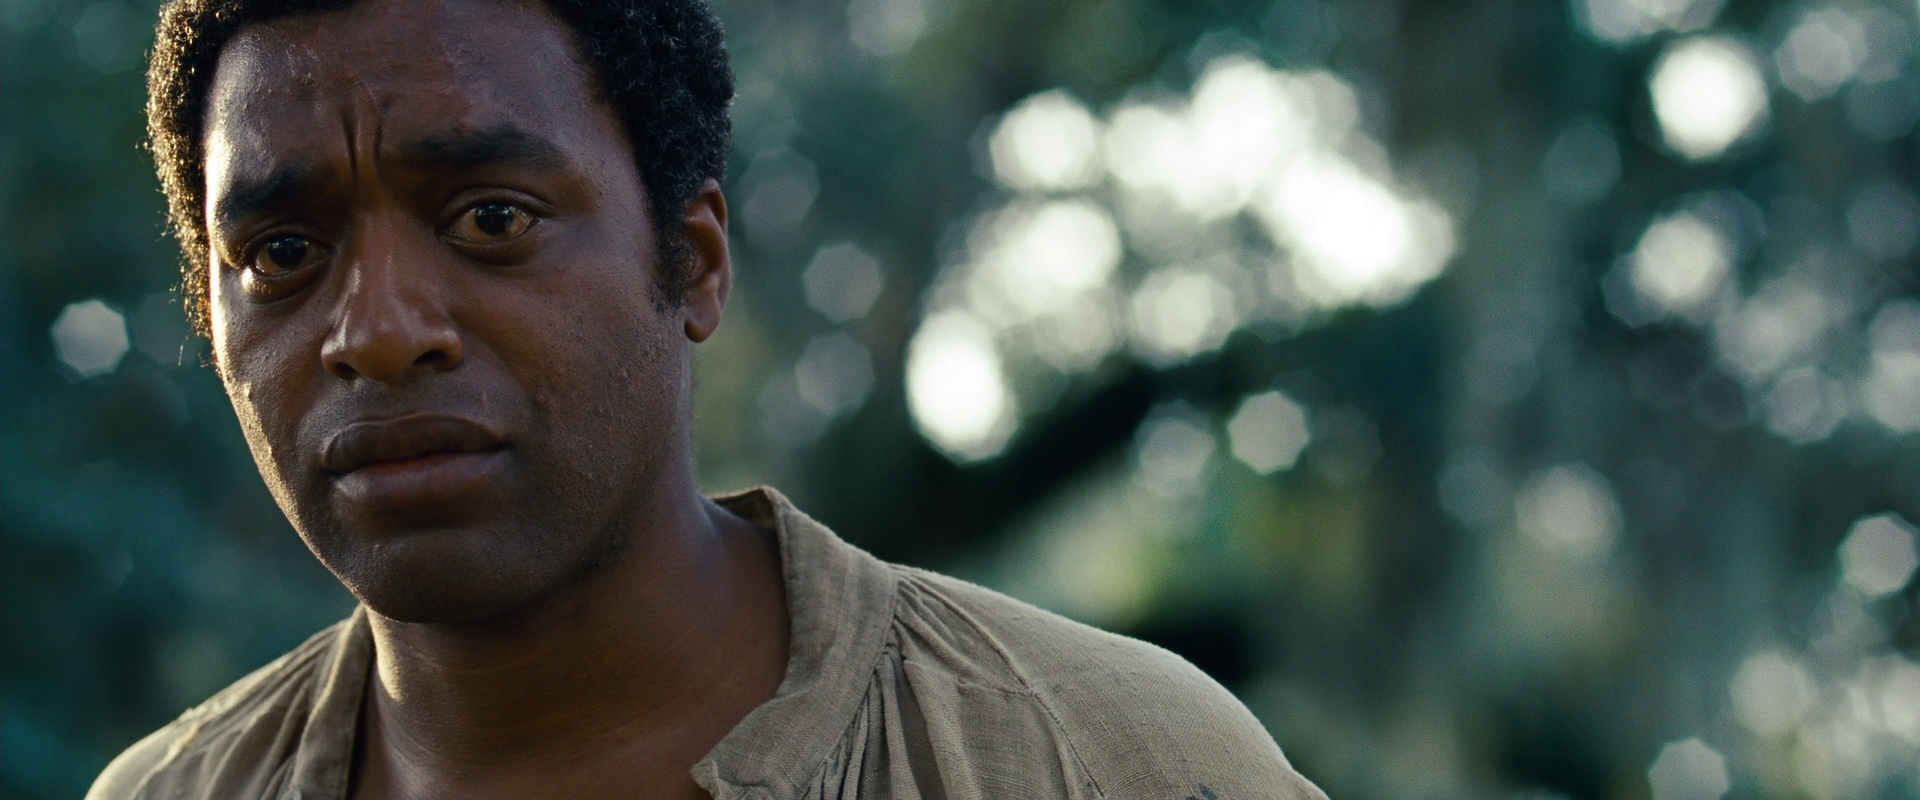 12 лет рабства / 12 Years a Slave (2013) BDRip 1080p | Лицензия